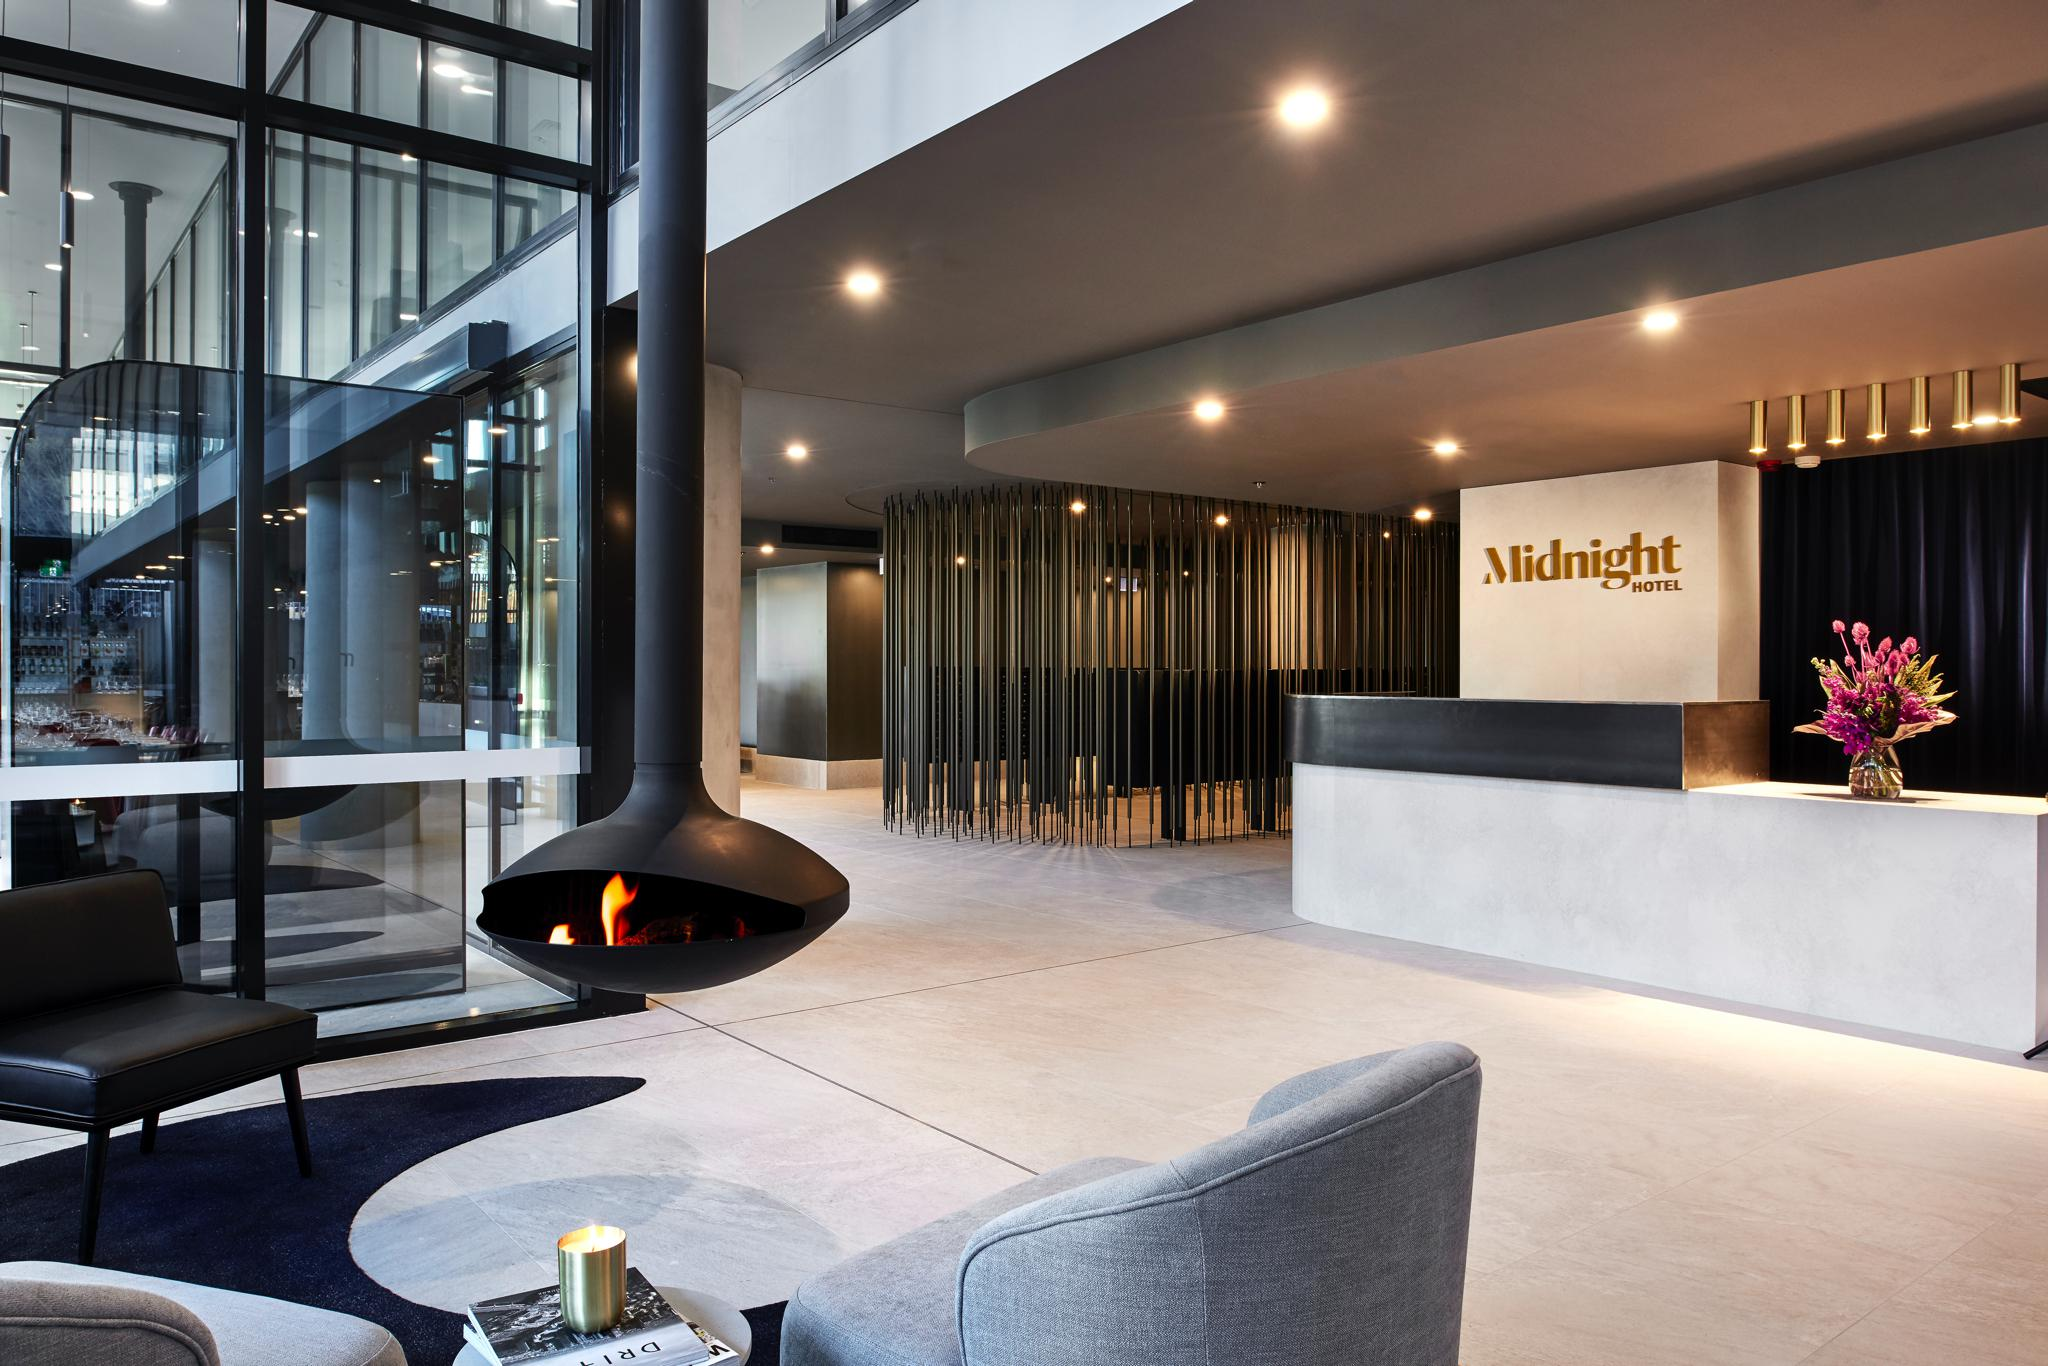 Canberra Welcomes Architectural, Moody Midnight Hotel